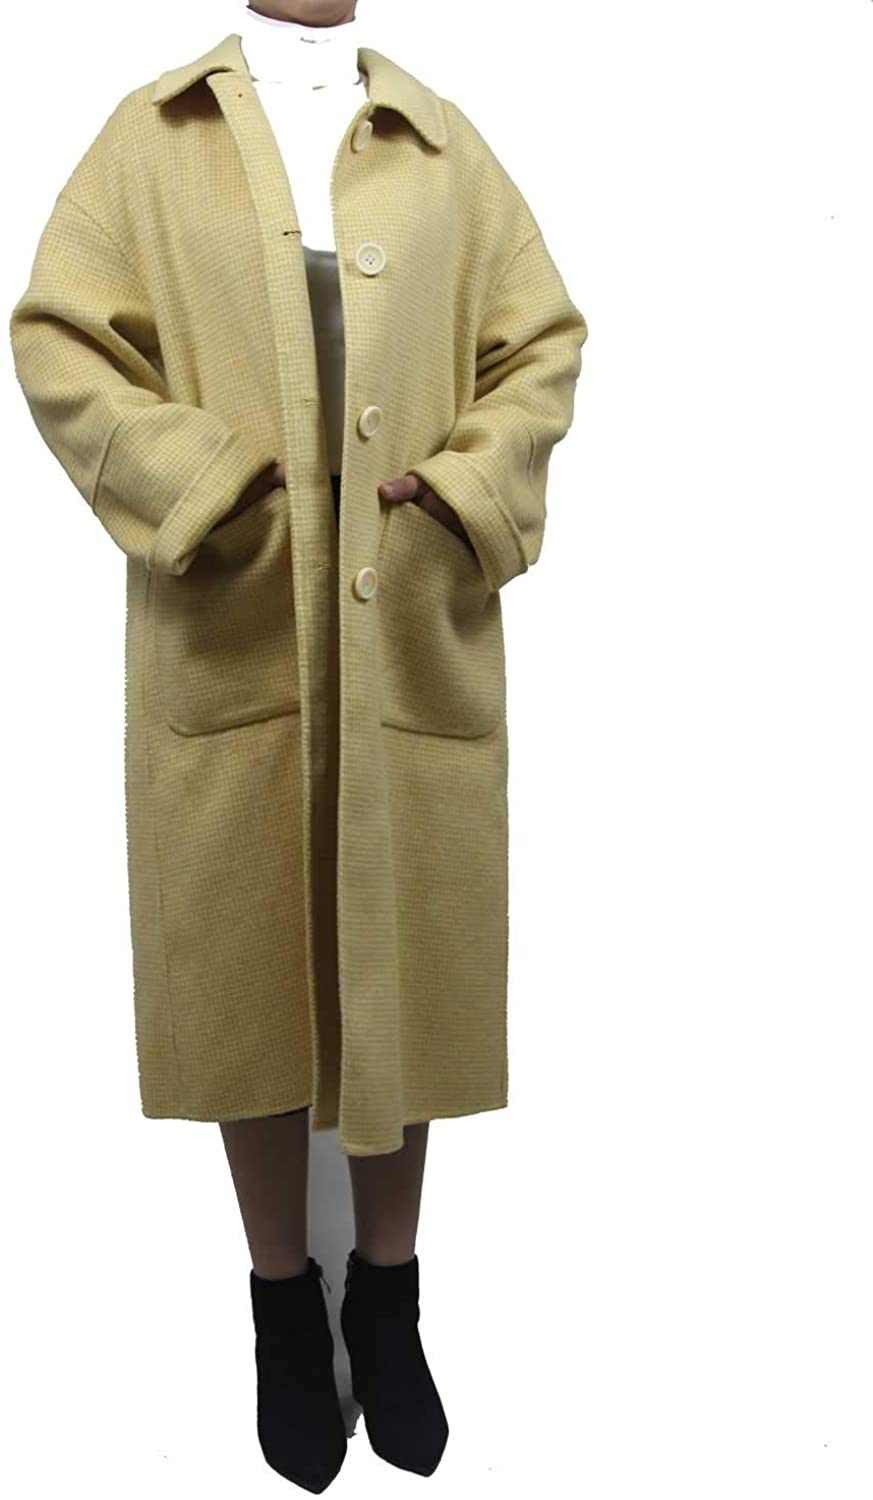 QHSYJ Double Faced Cashmere Coat